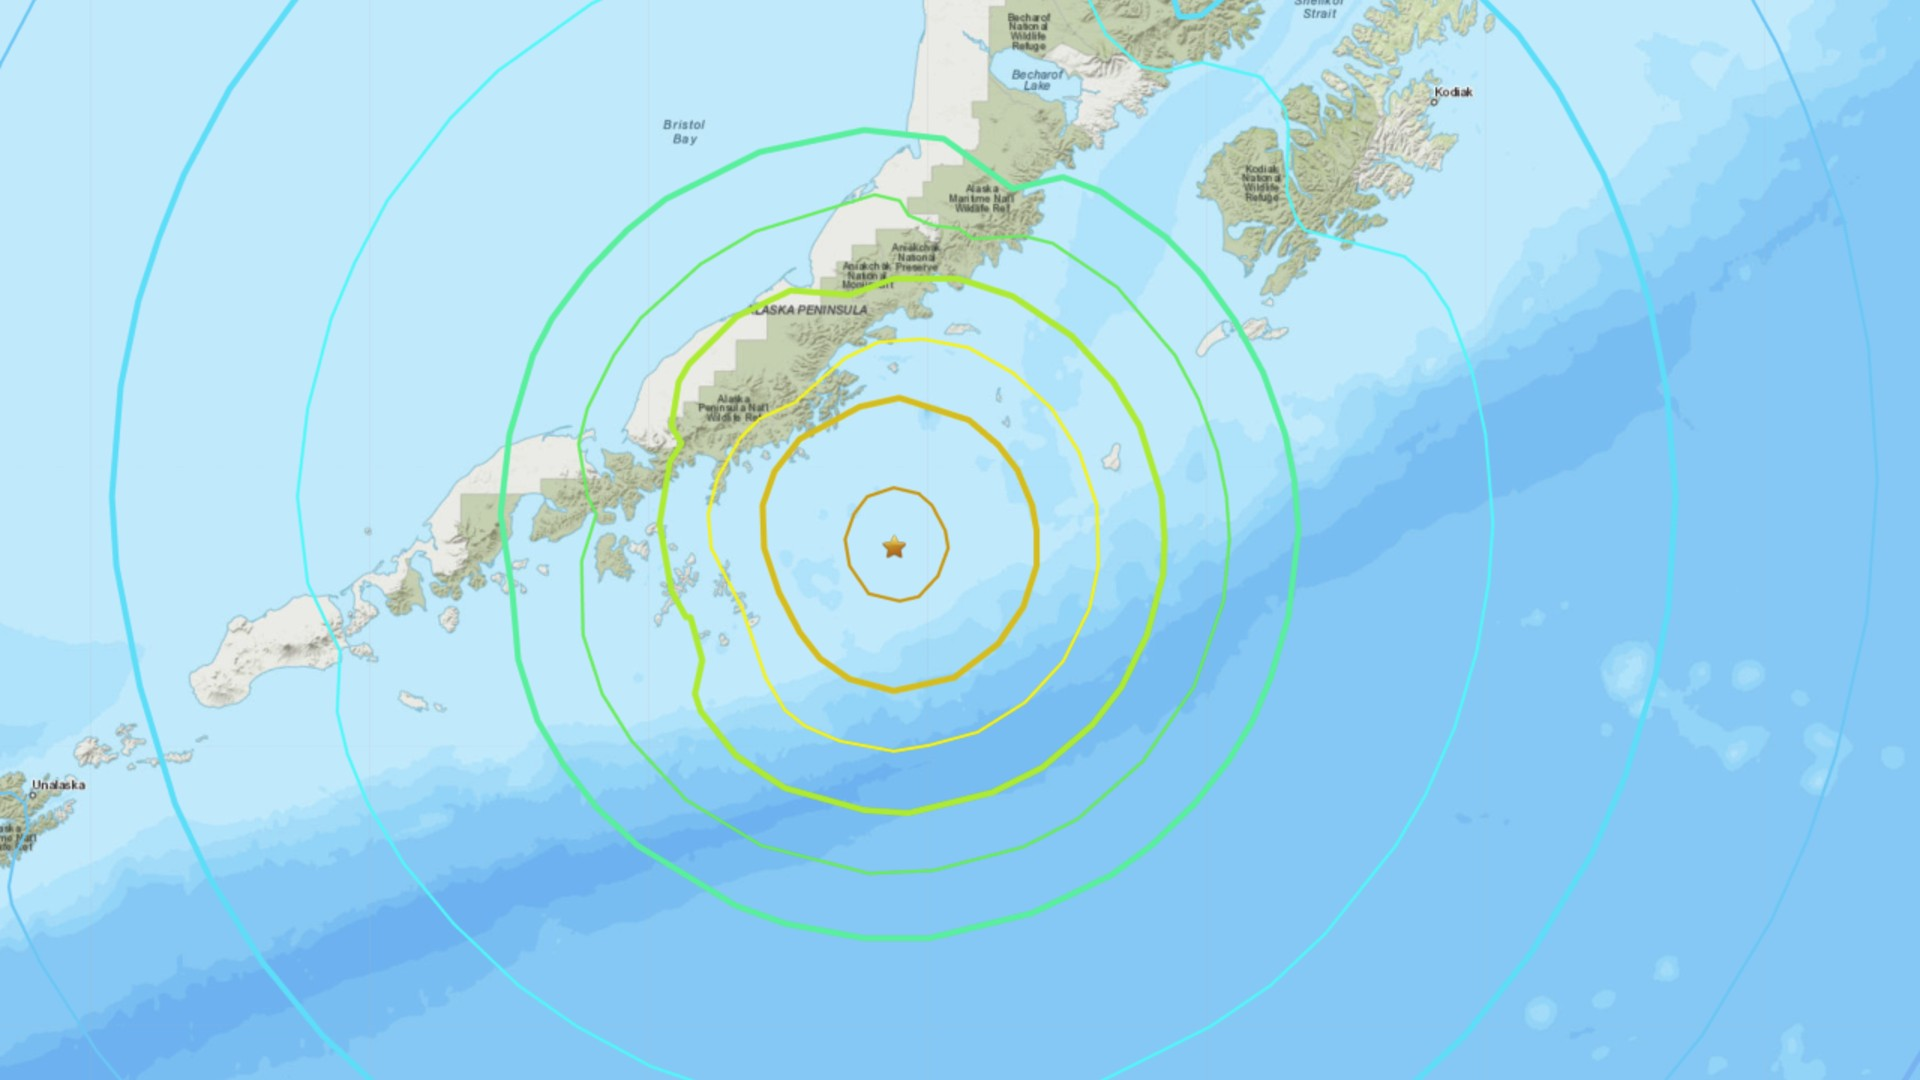 A tsunami warning was issued for parts of Alaska after an 8.2 magnitude earthquake struck the peninsula. (U.S. Geological Survey)